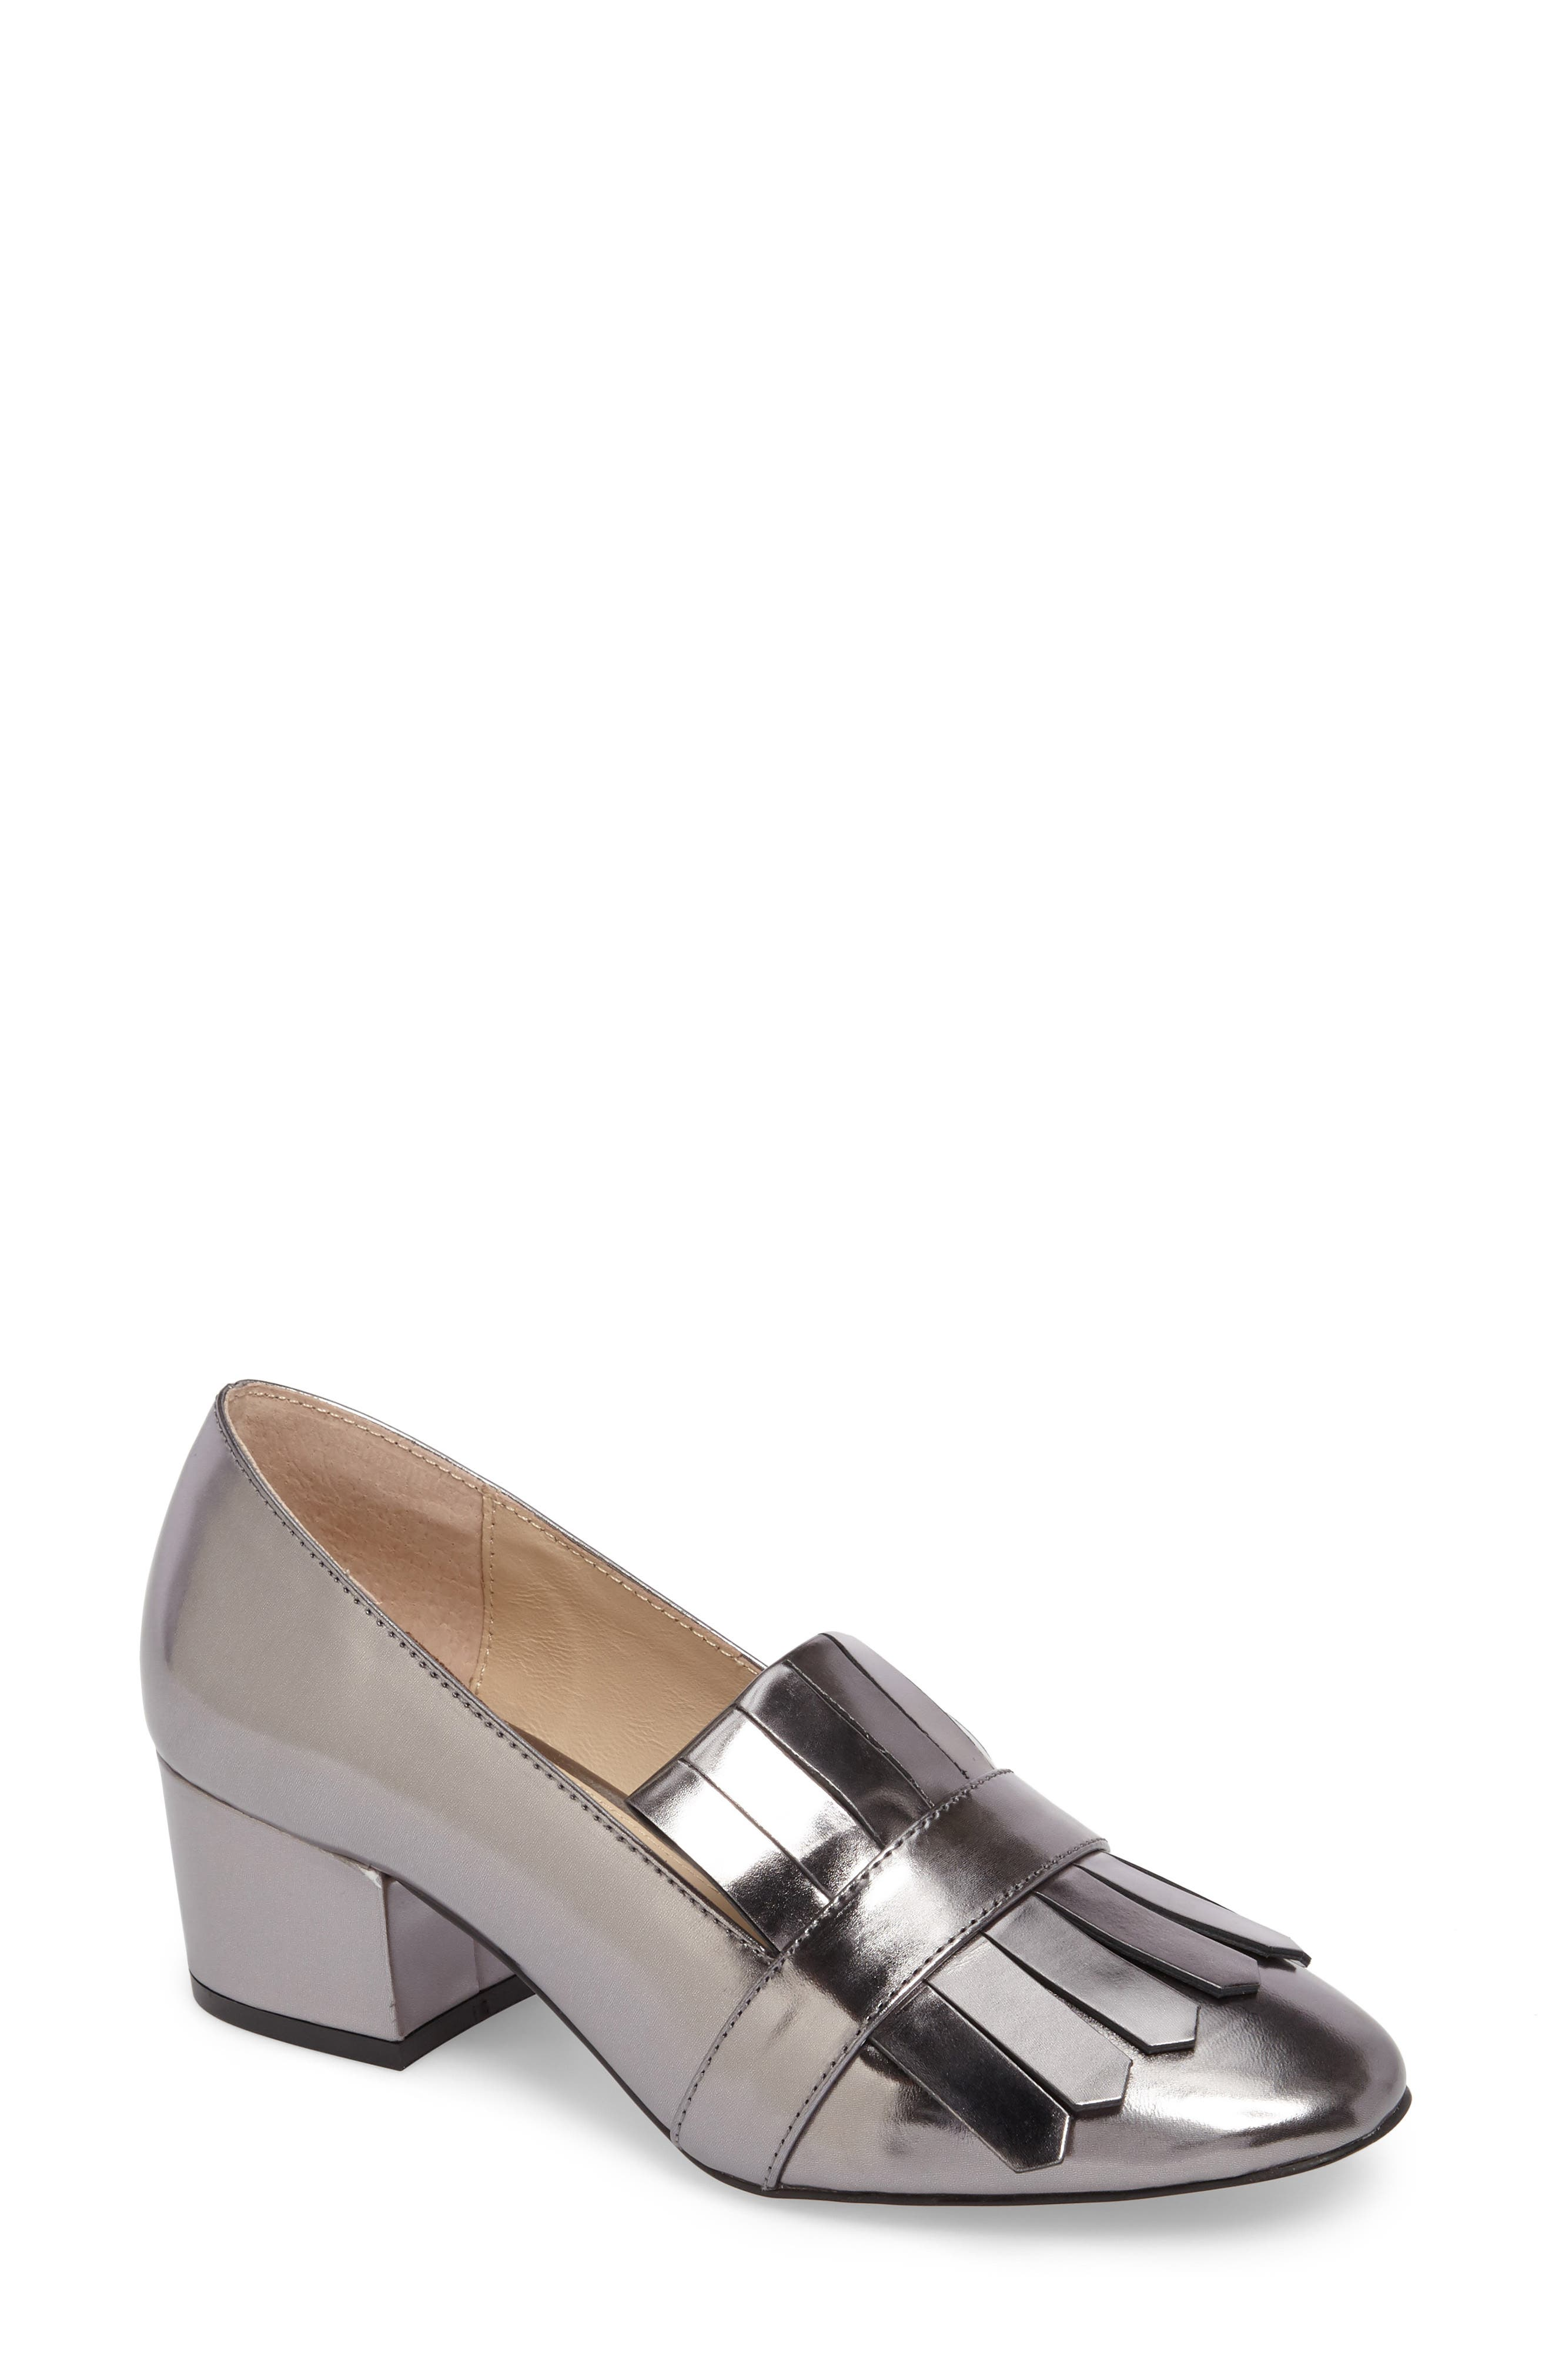 Botkier Olive Loafer Pump (Women)